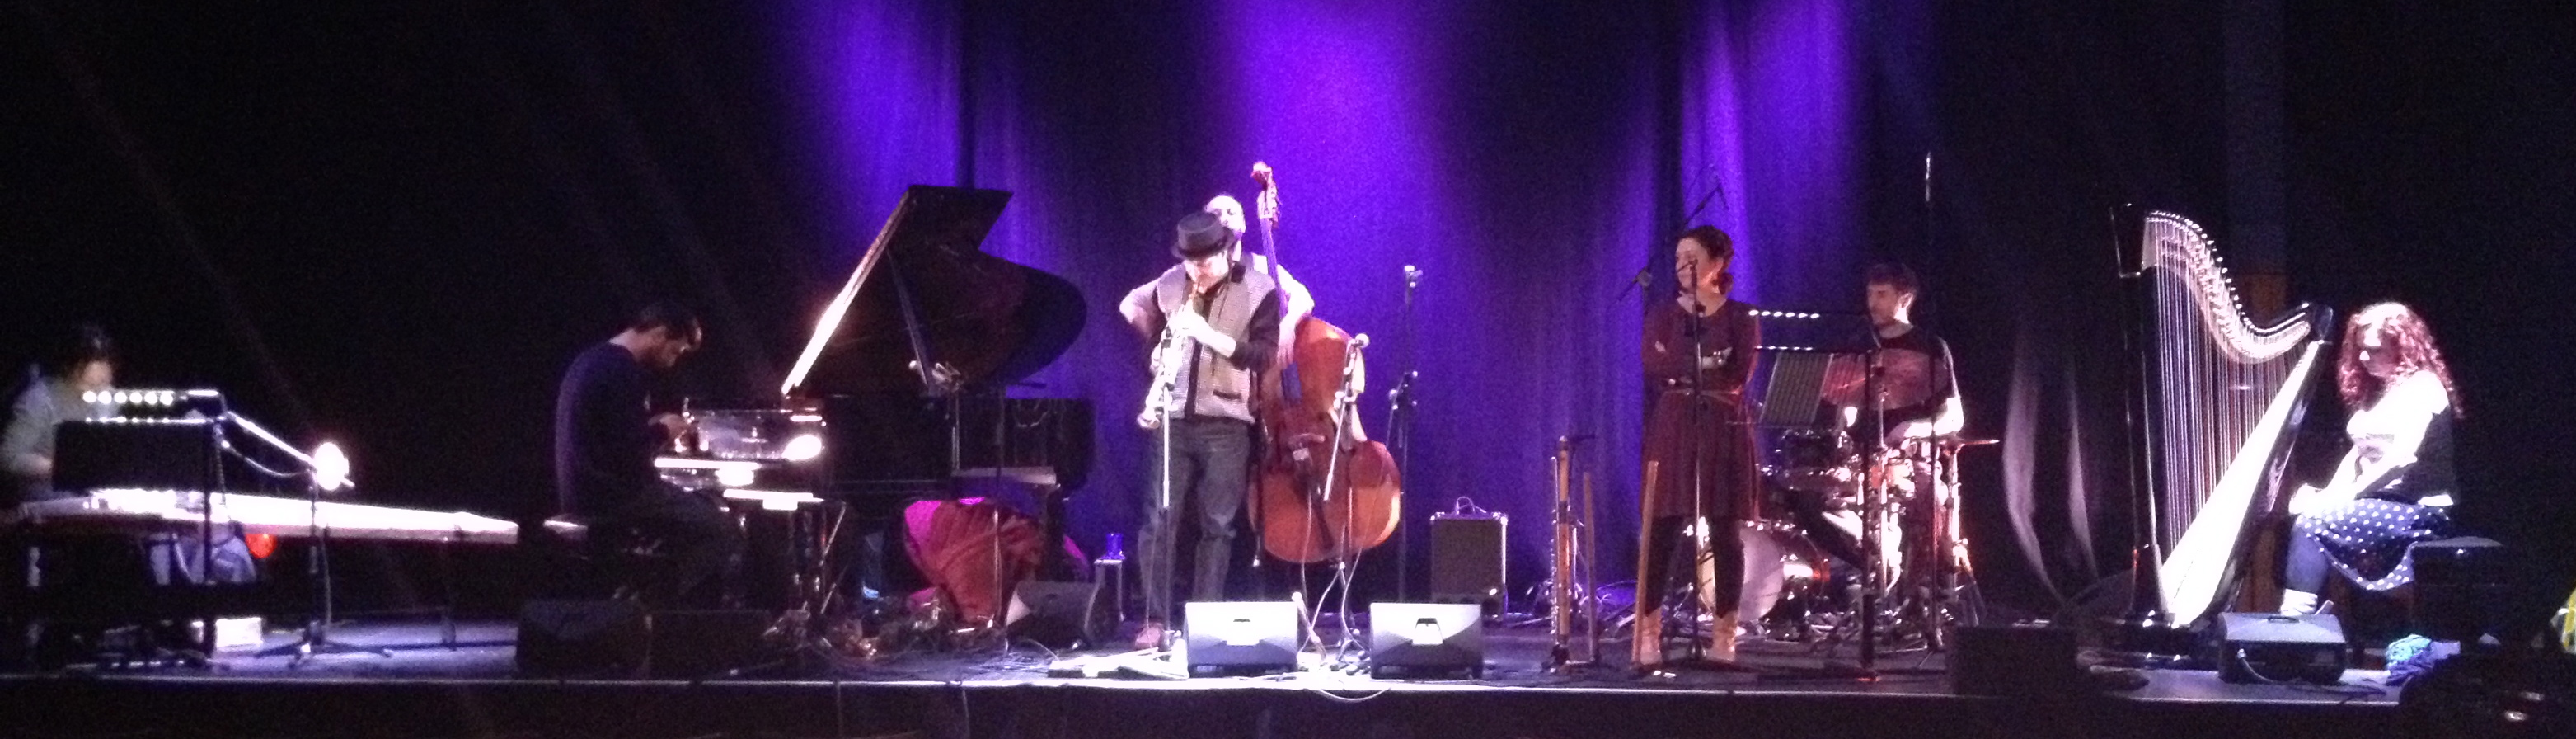 Matthew Halsall & The Gondwana Orchestra @ Kings Place 15.02.2014